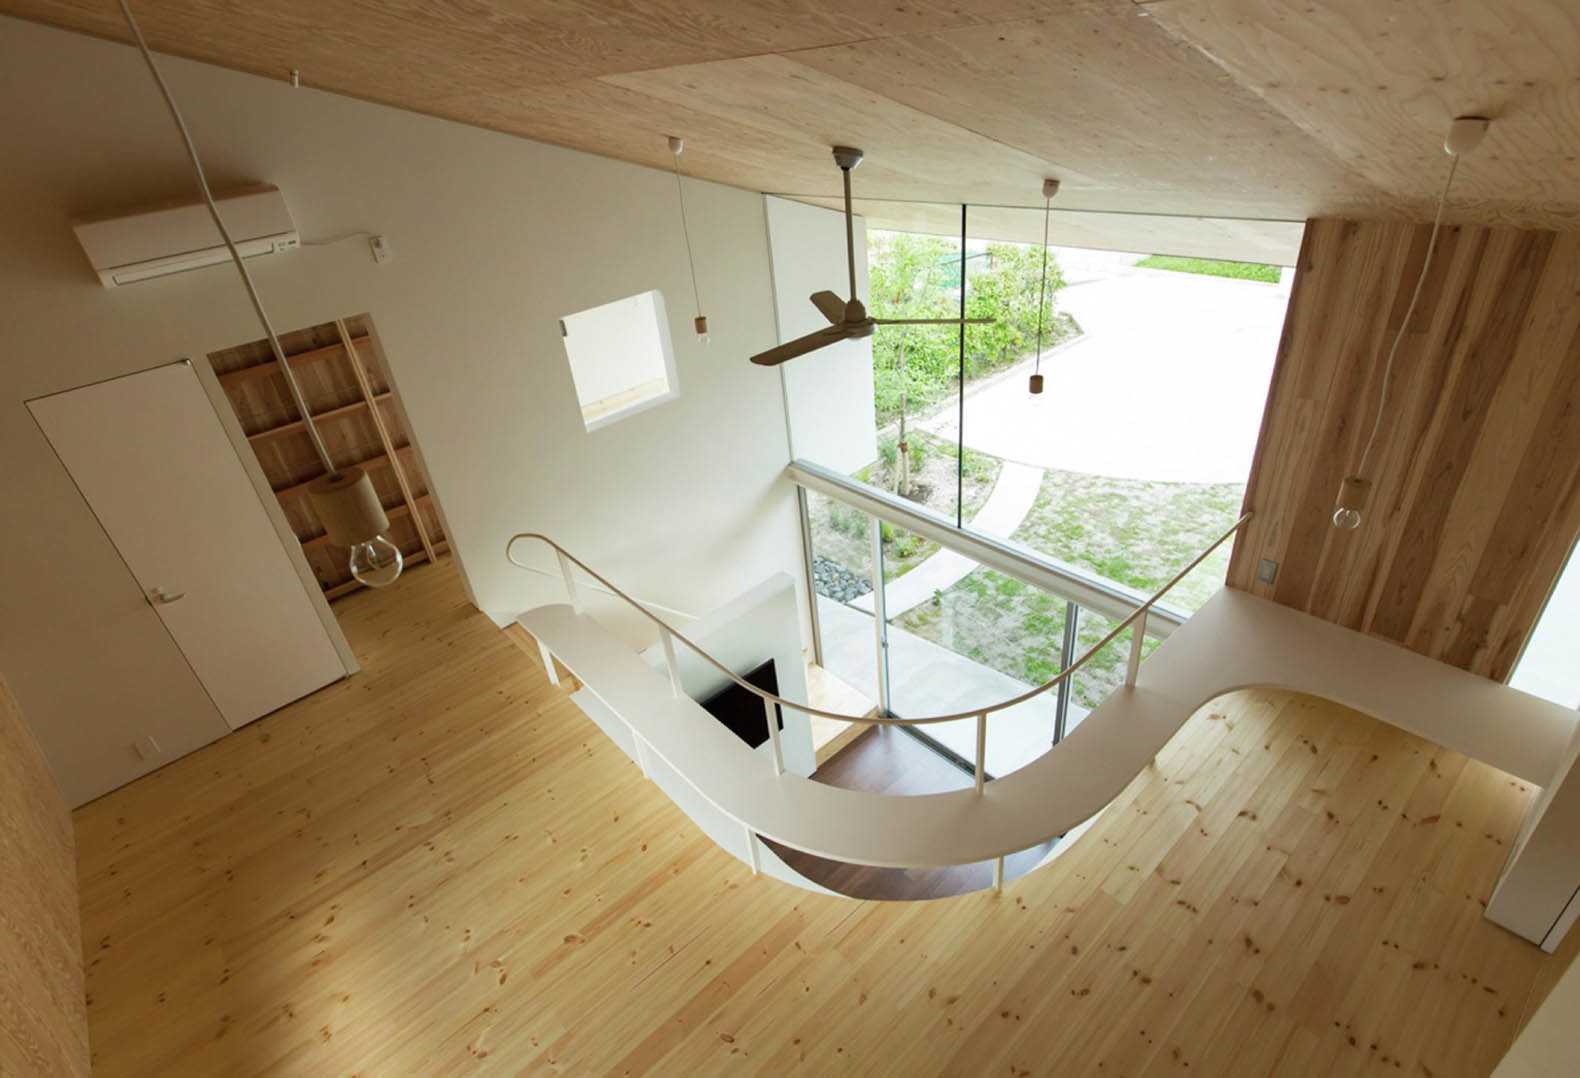 Manta House, Japan, Y+M Design Office, Natural Ventilation, Natural Lighting